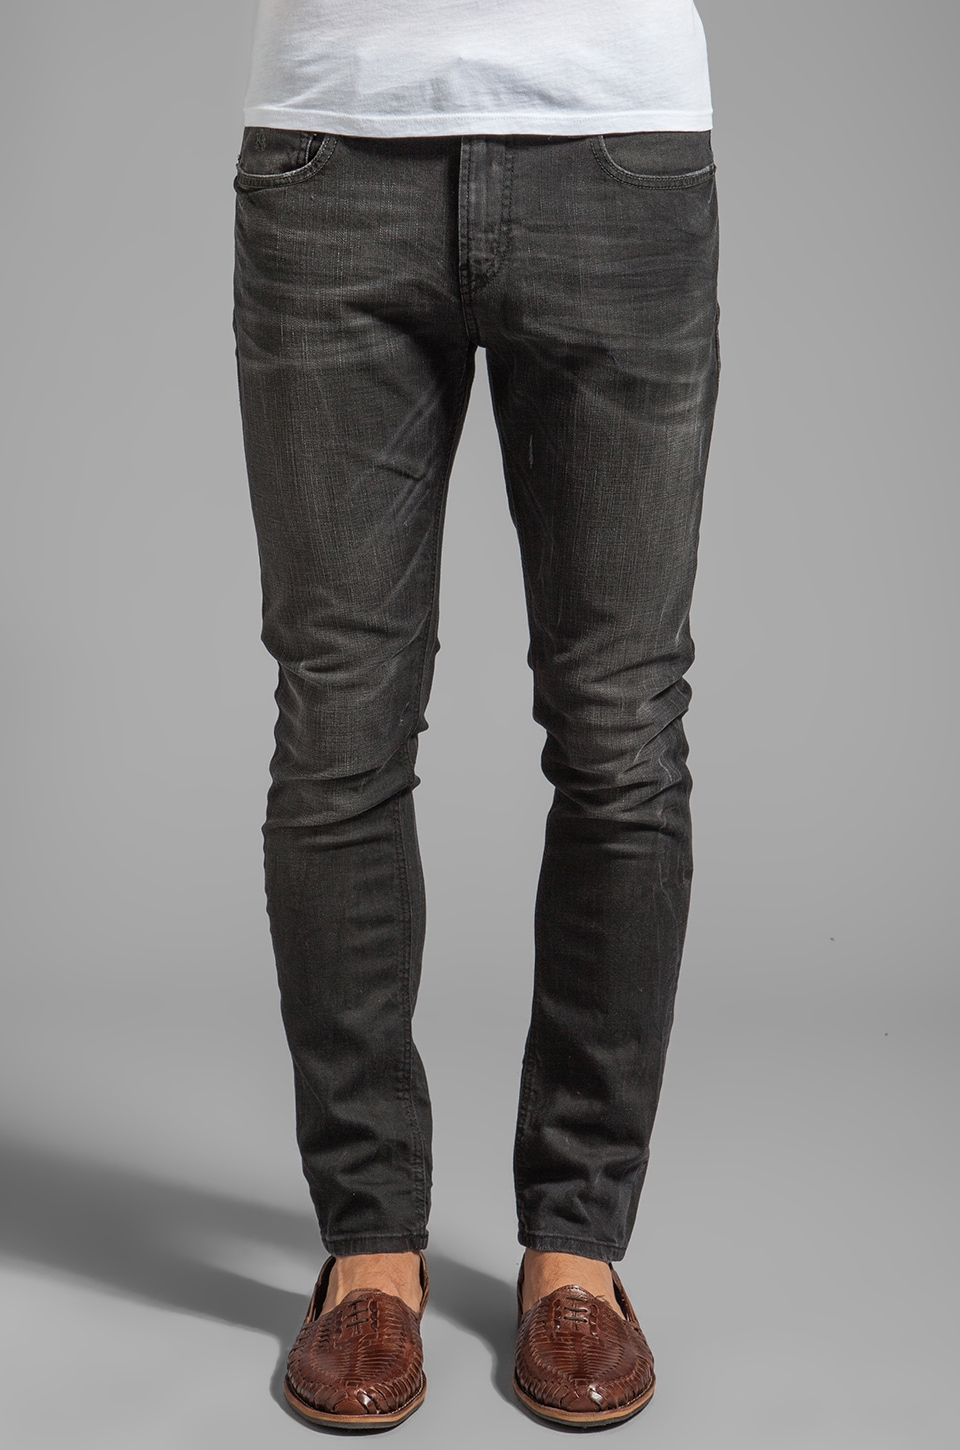 Scotch & Soda Skim Skinny in Slick Mick